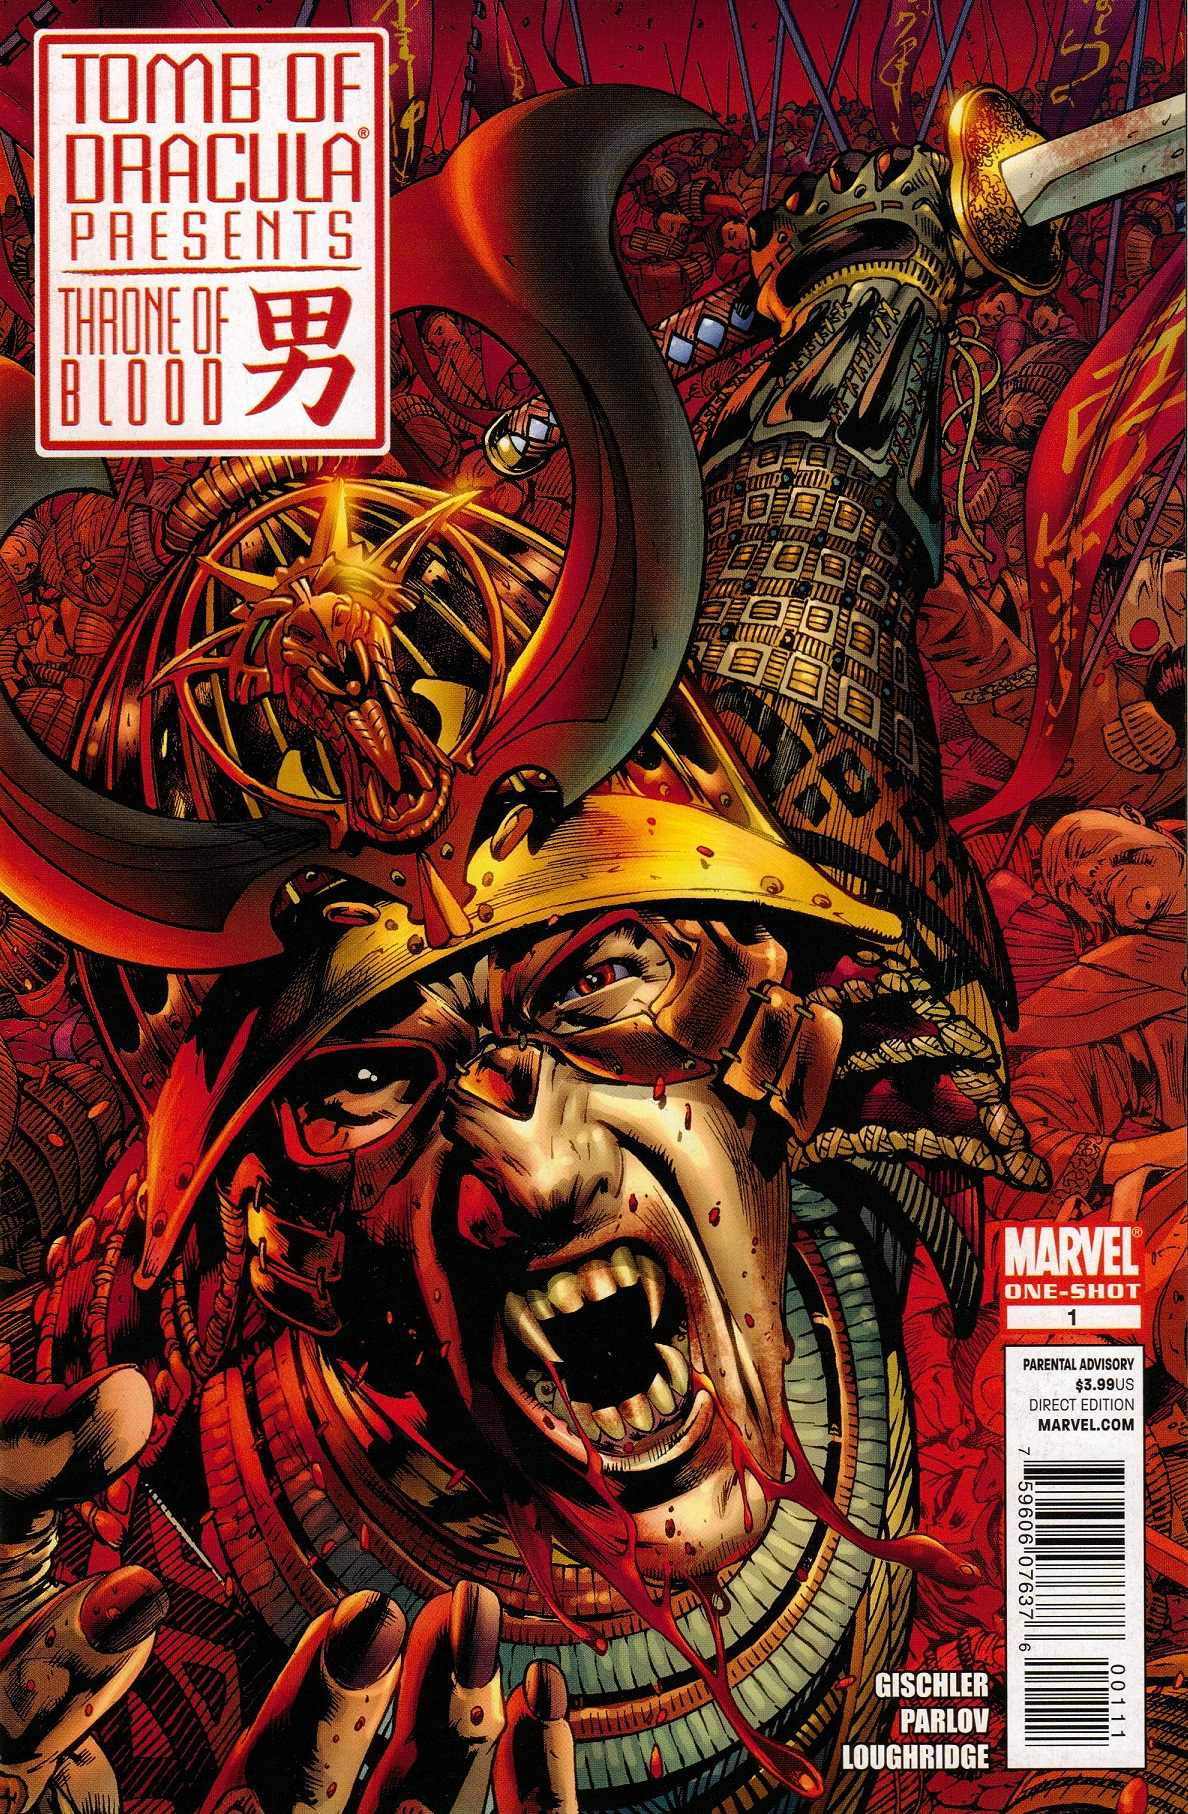 Tomb of Dracula Presents: Throne of Blood Vol 1